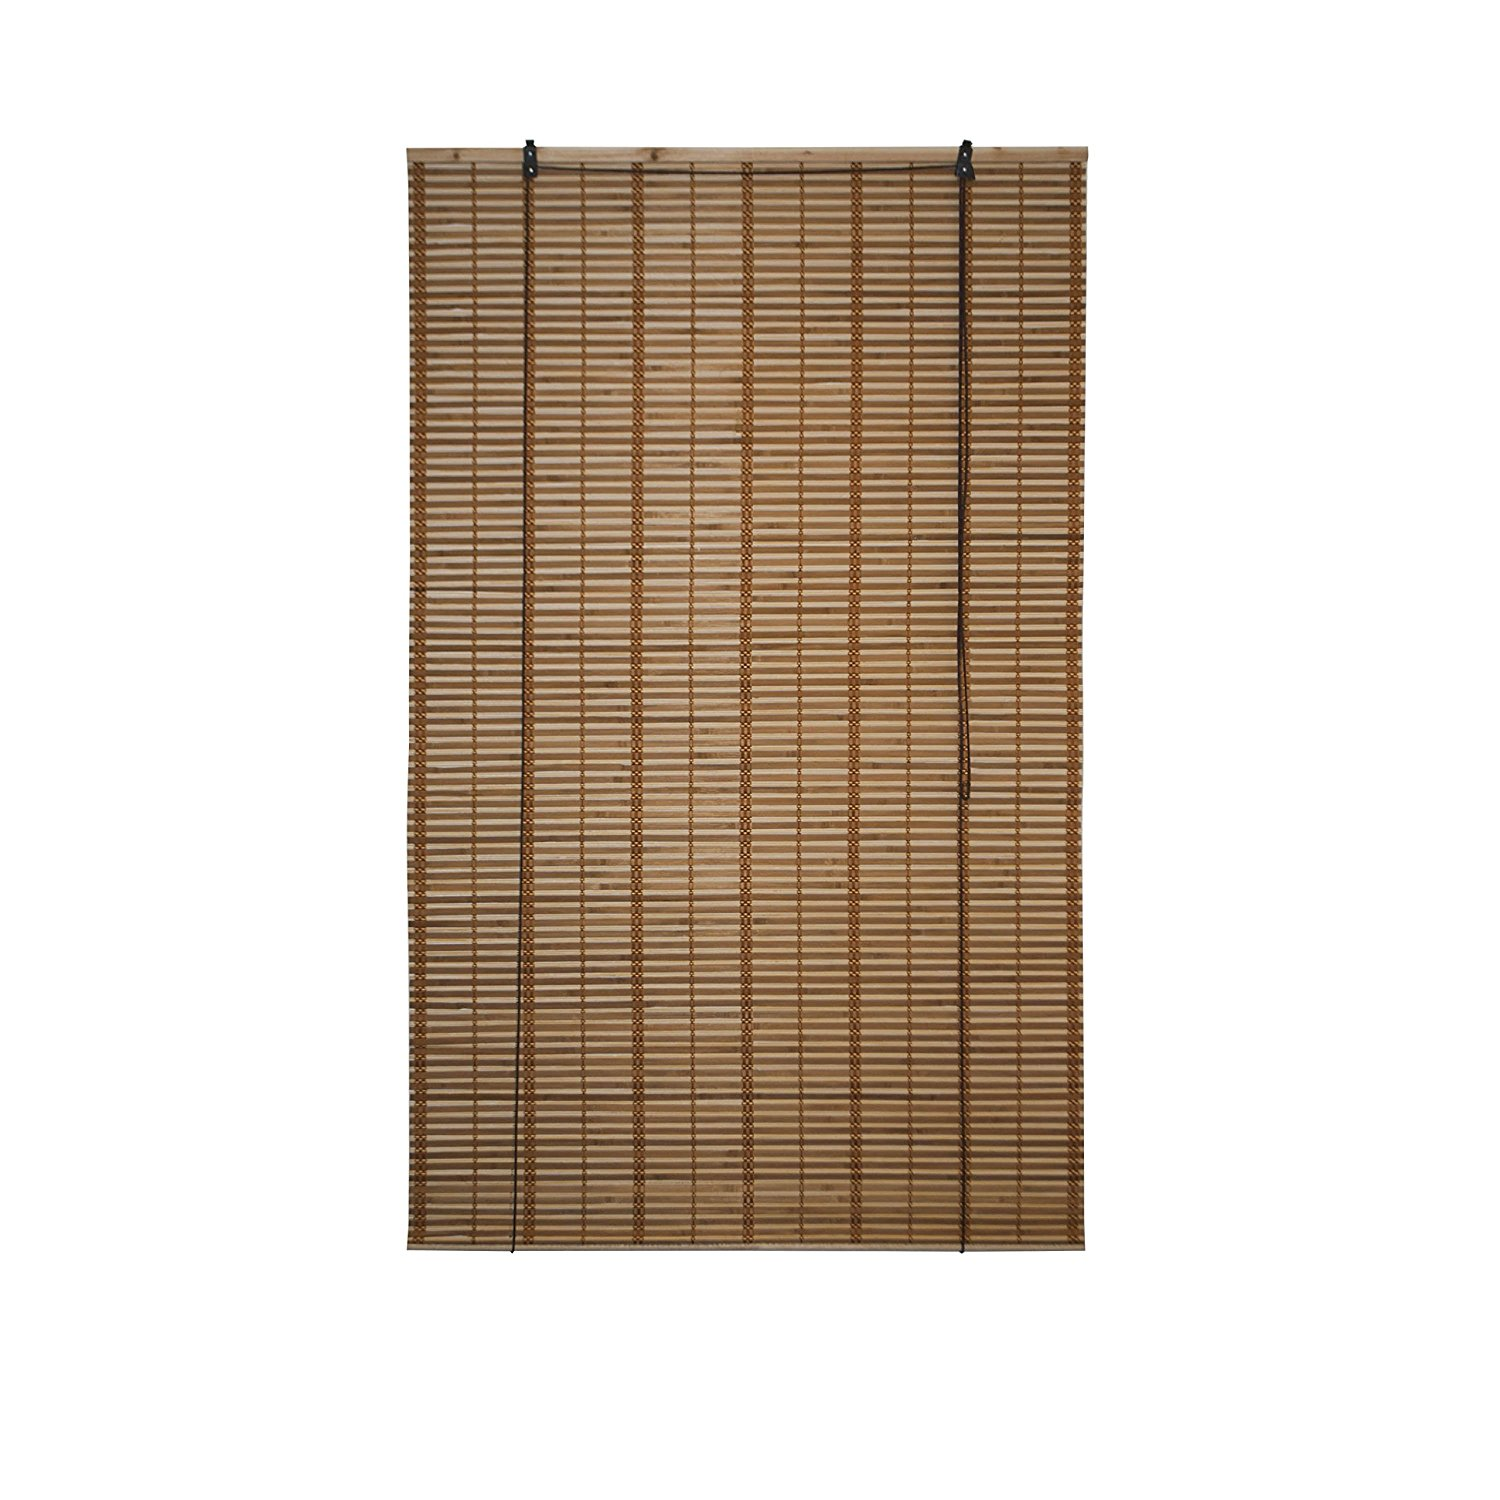 Light Brown Bamboo Midollino Wooden Roll Up Blinds Light Filtering Shades 39X64